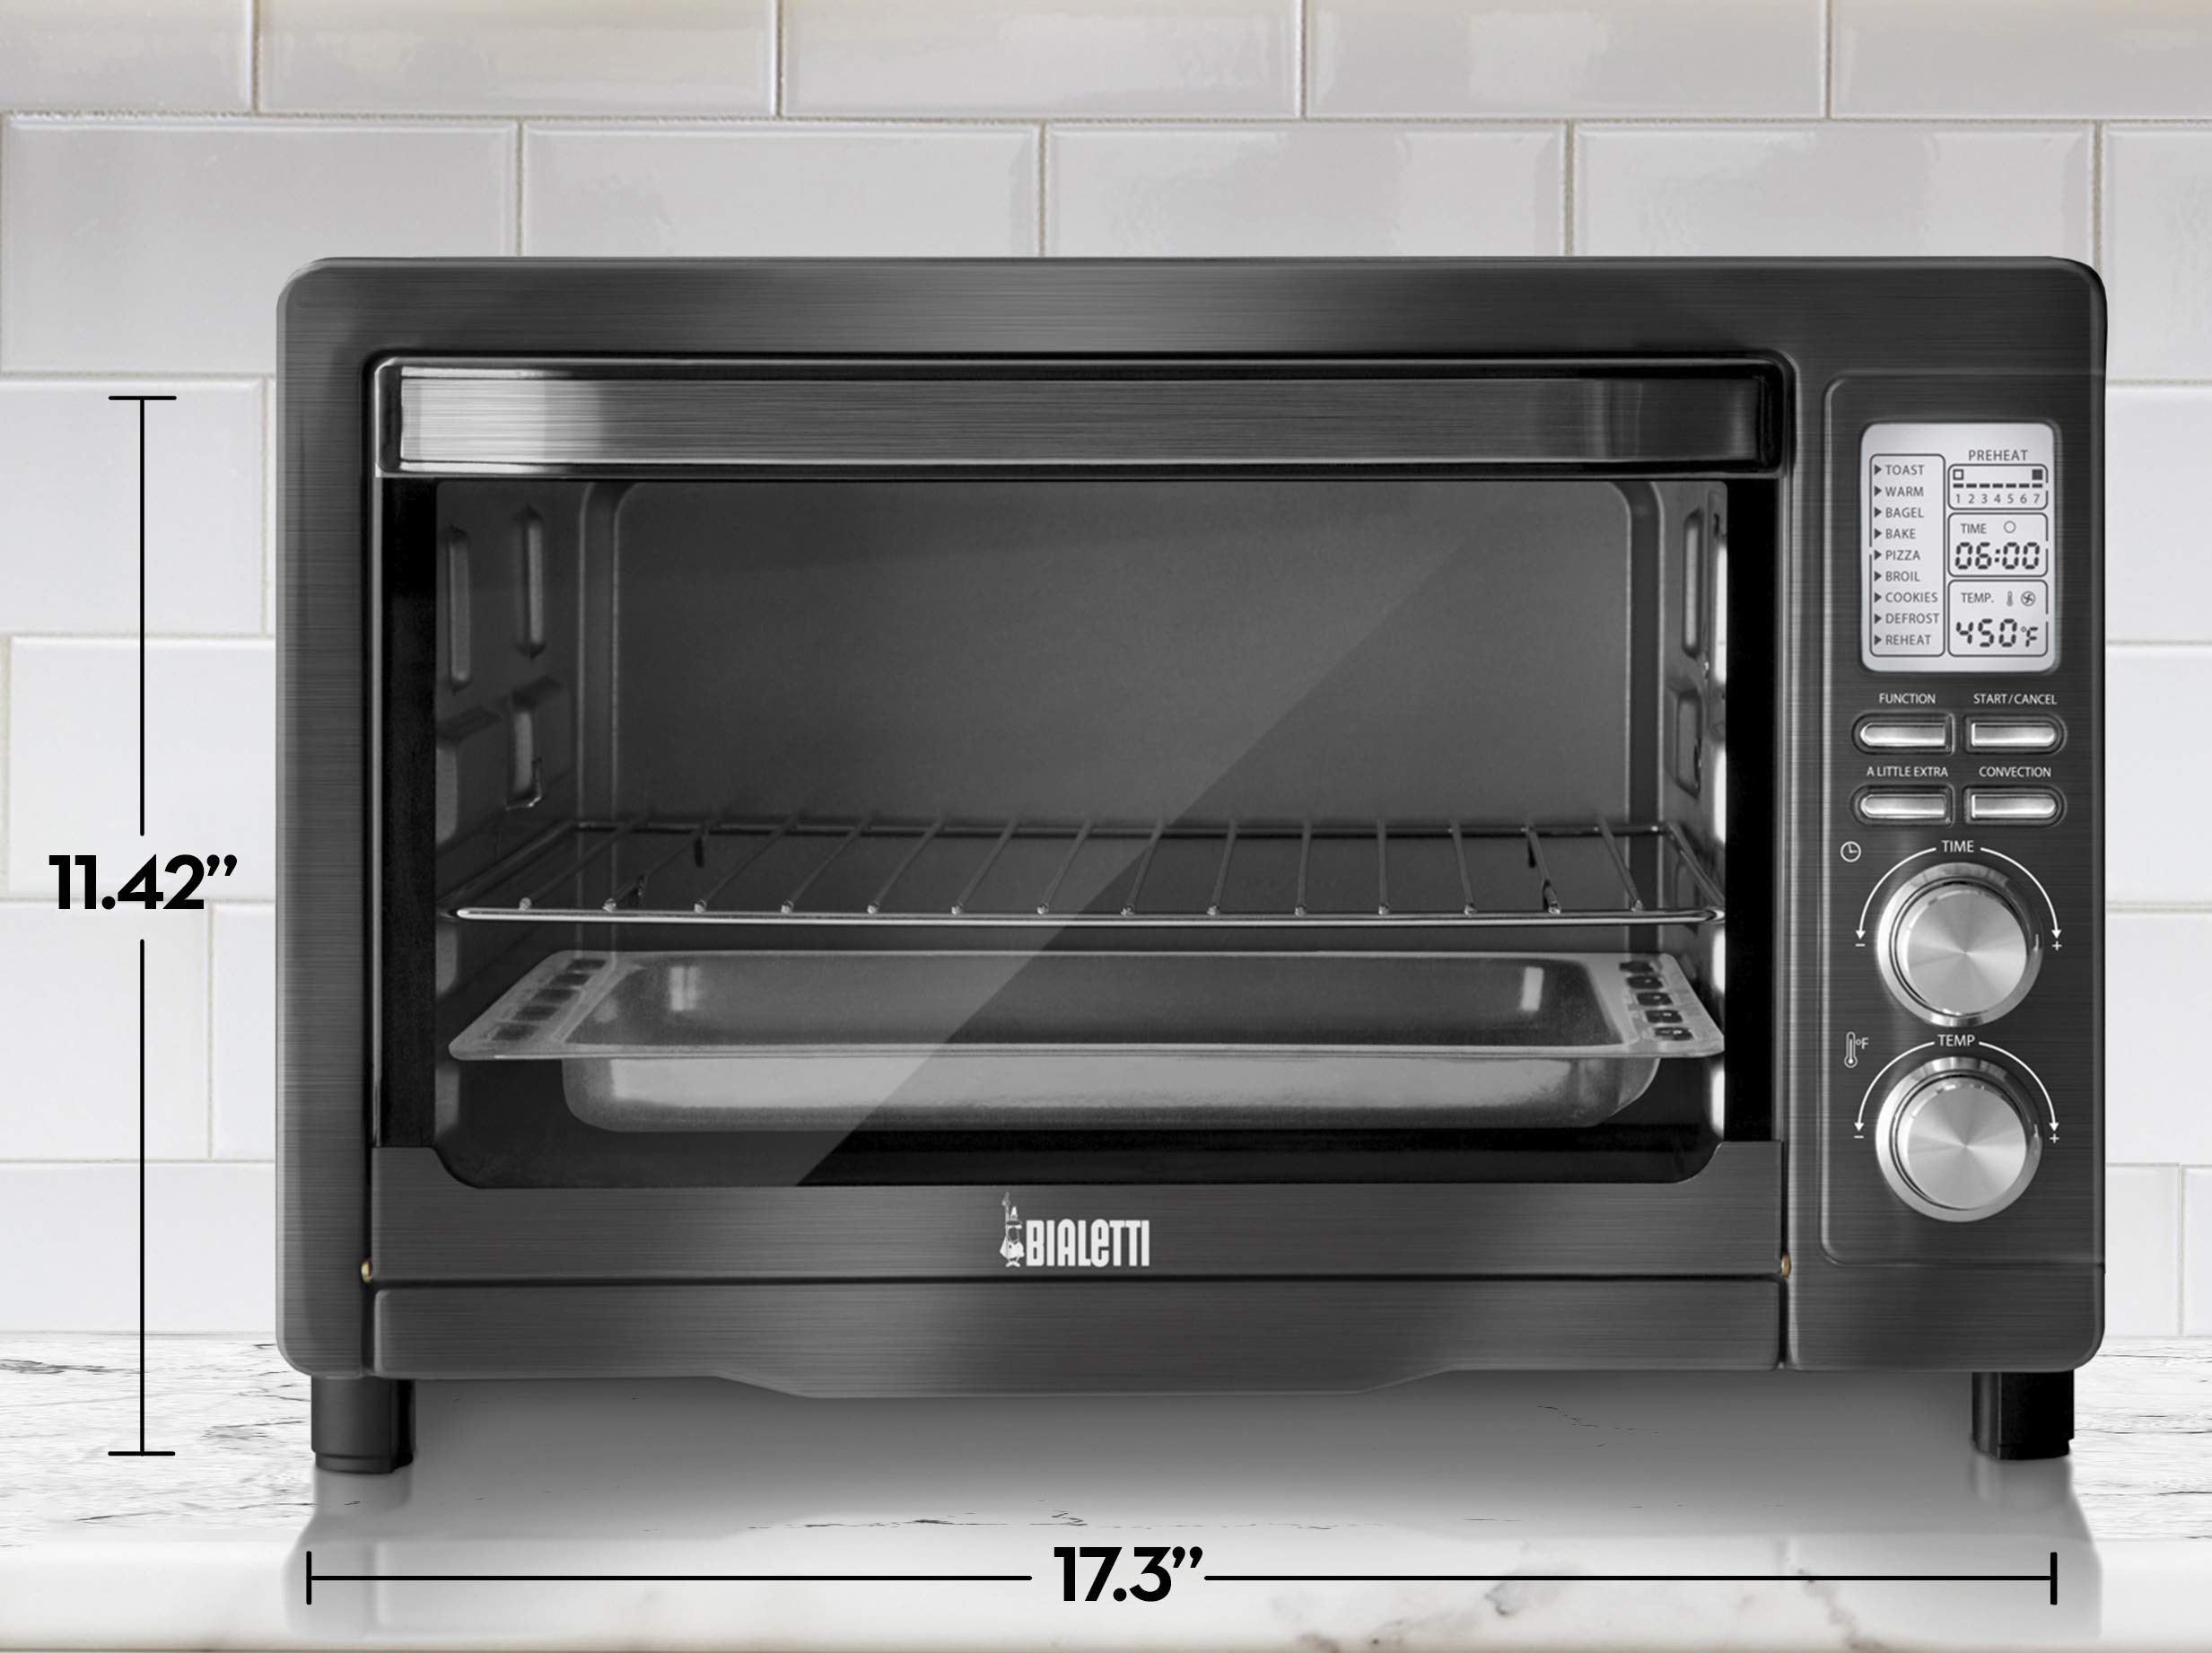 Bialetti (35047) 6-Slice Convection Toaster Oven, Black Stainless Steel by Bialetti (Image #6)